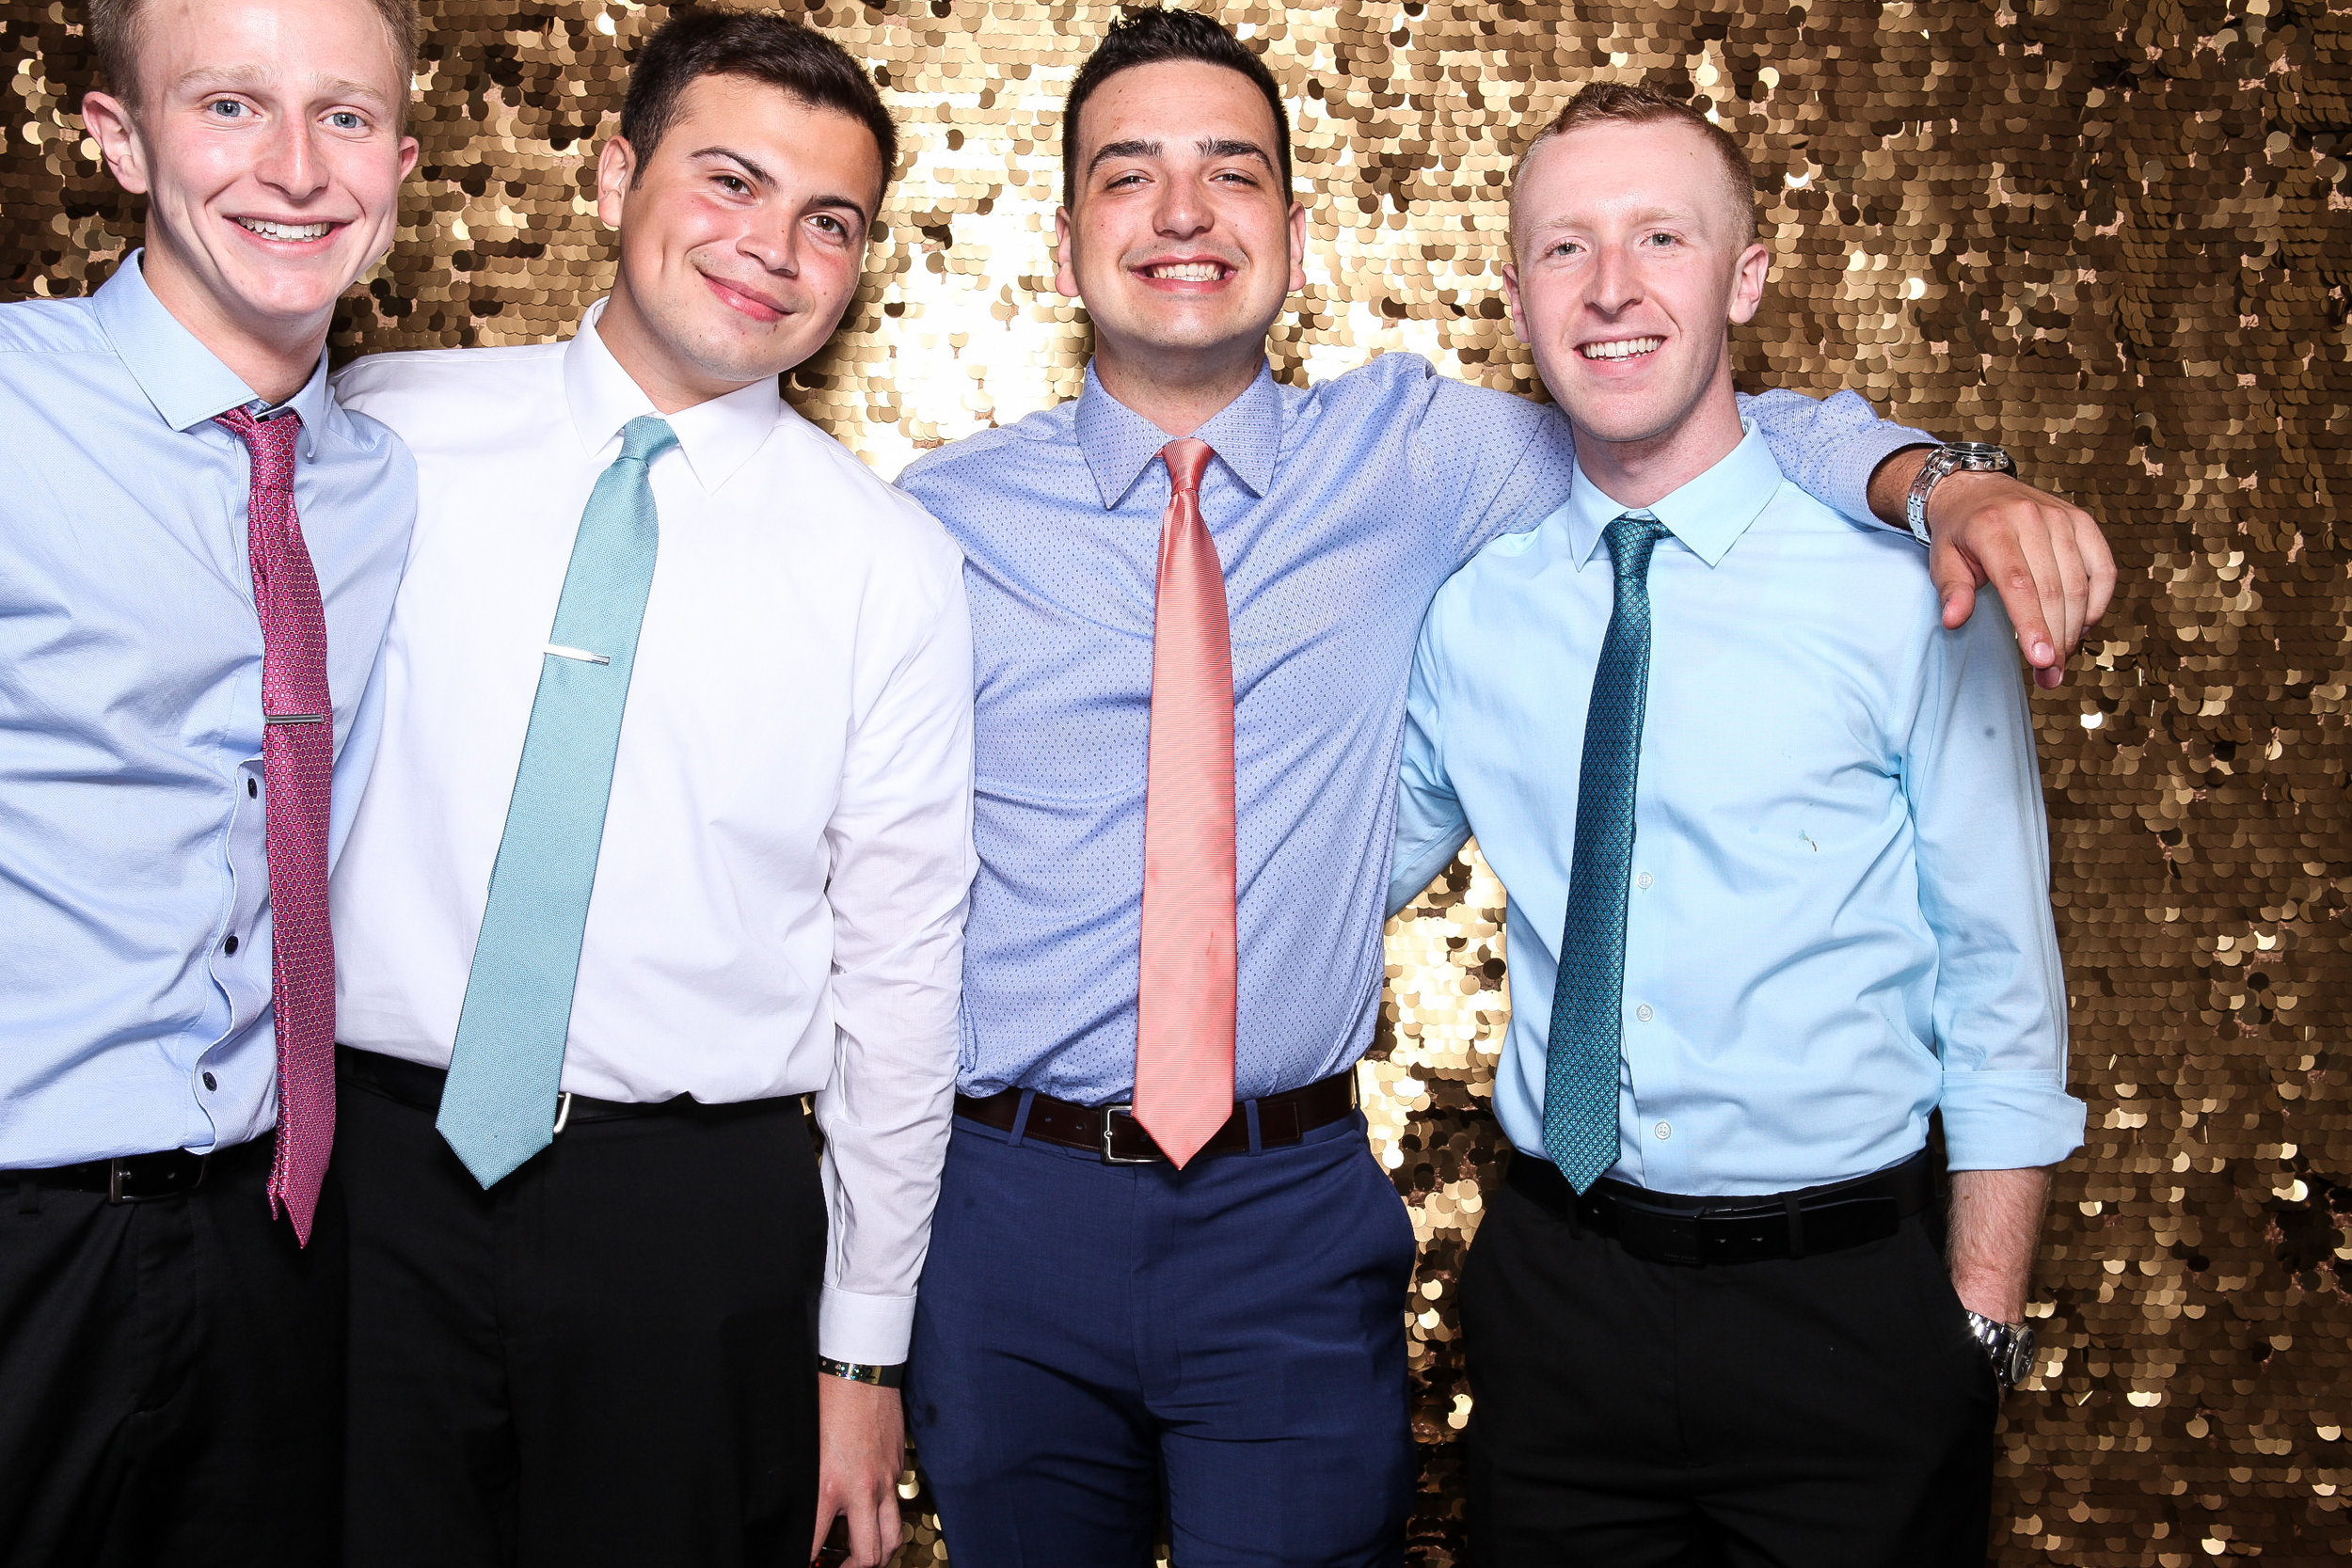 20190503_Adelphi_Senior_Formal-338.jpg